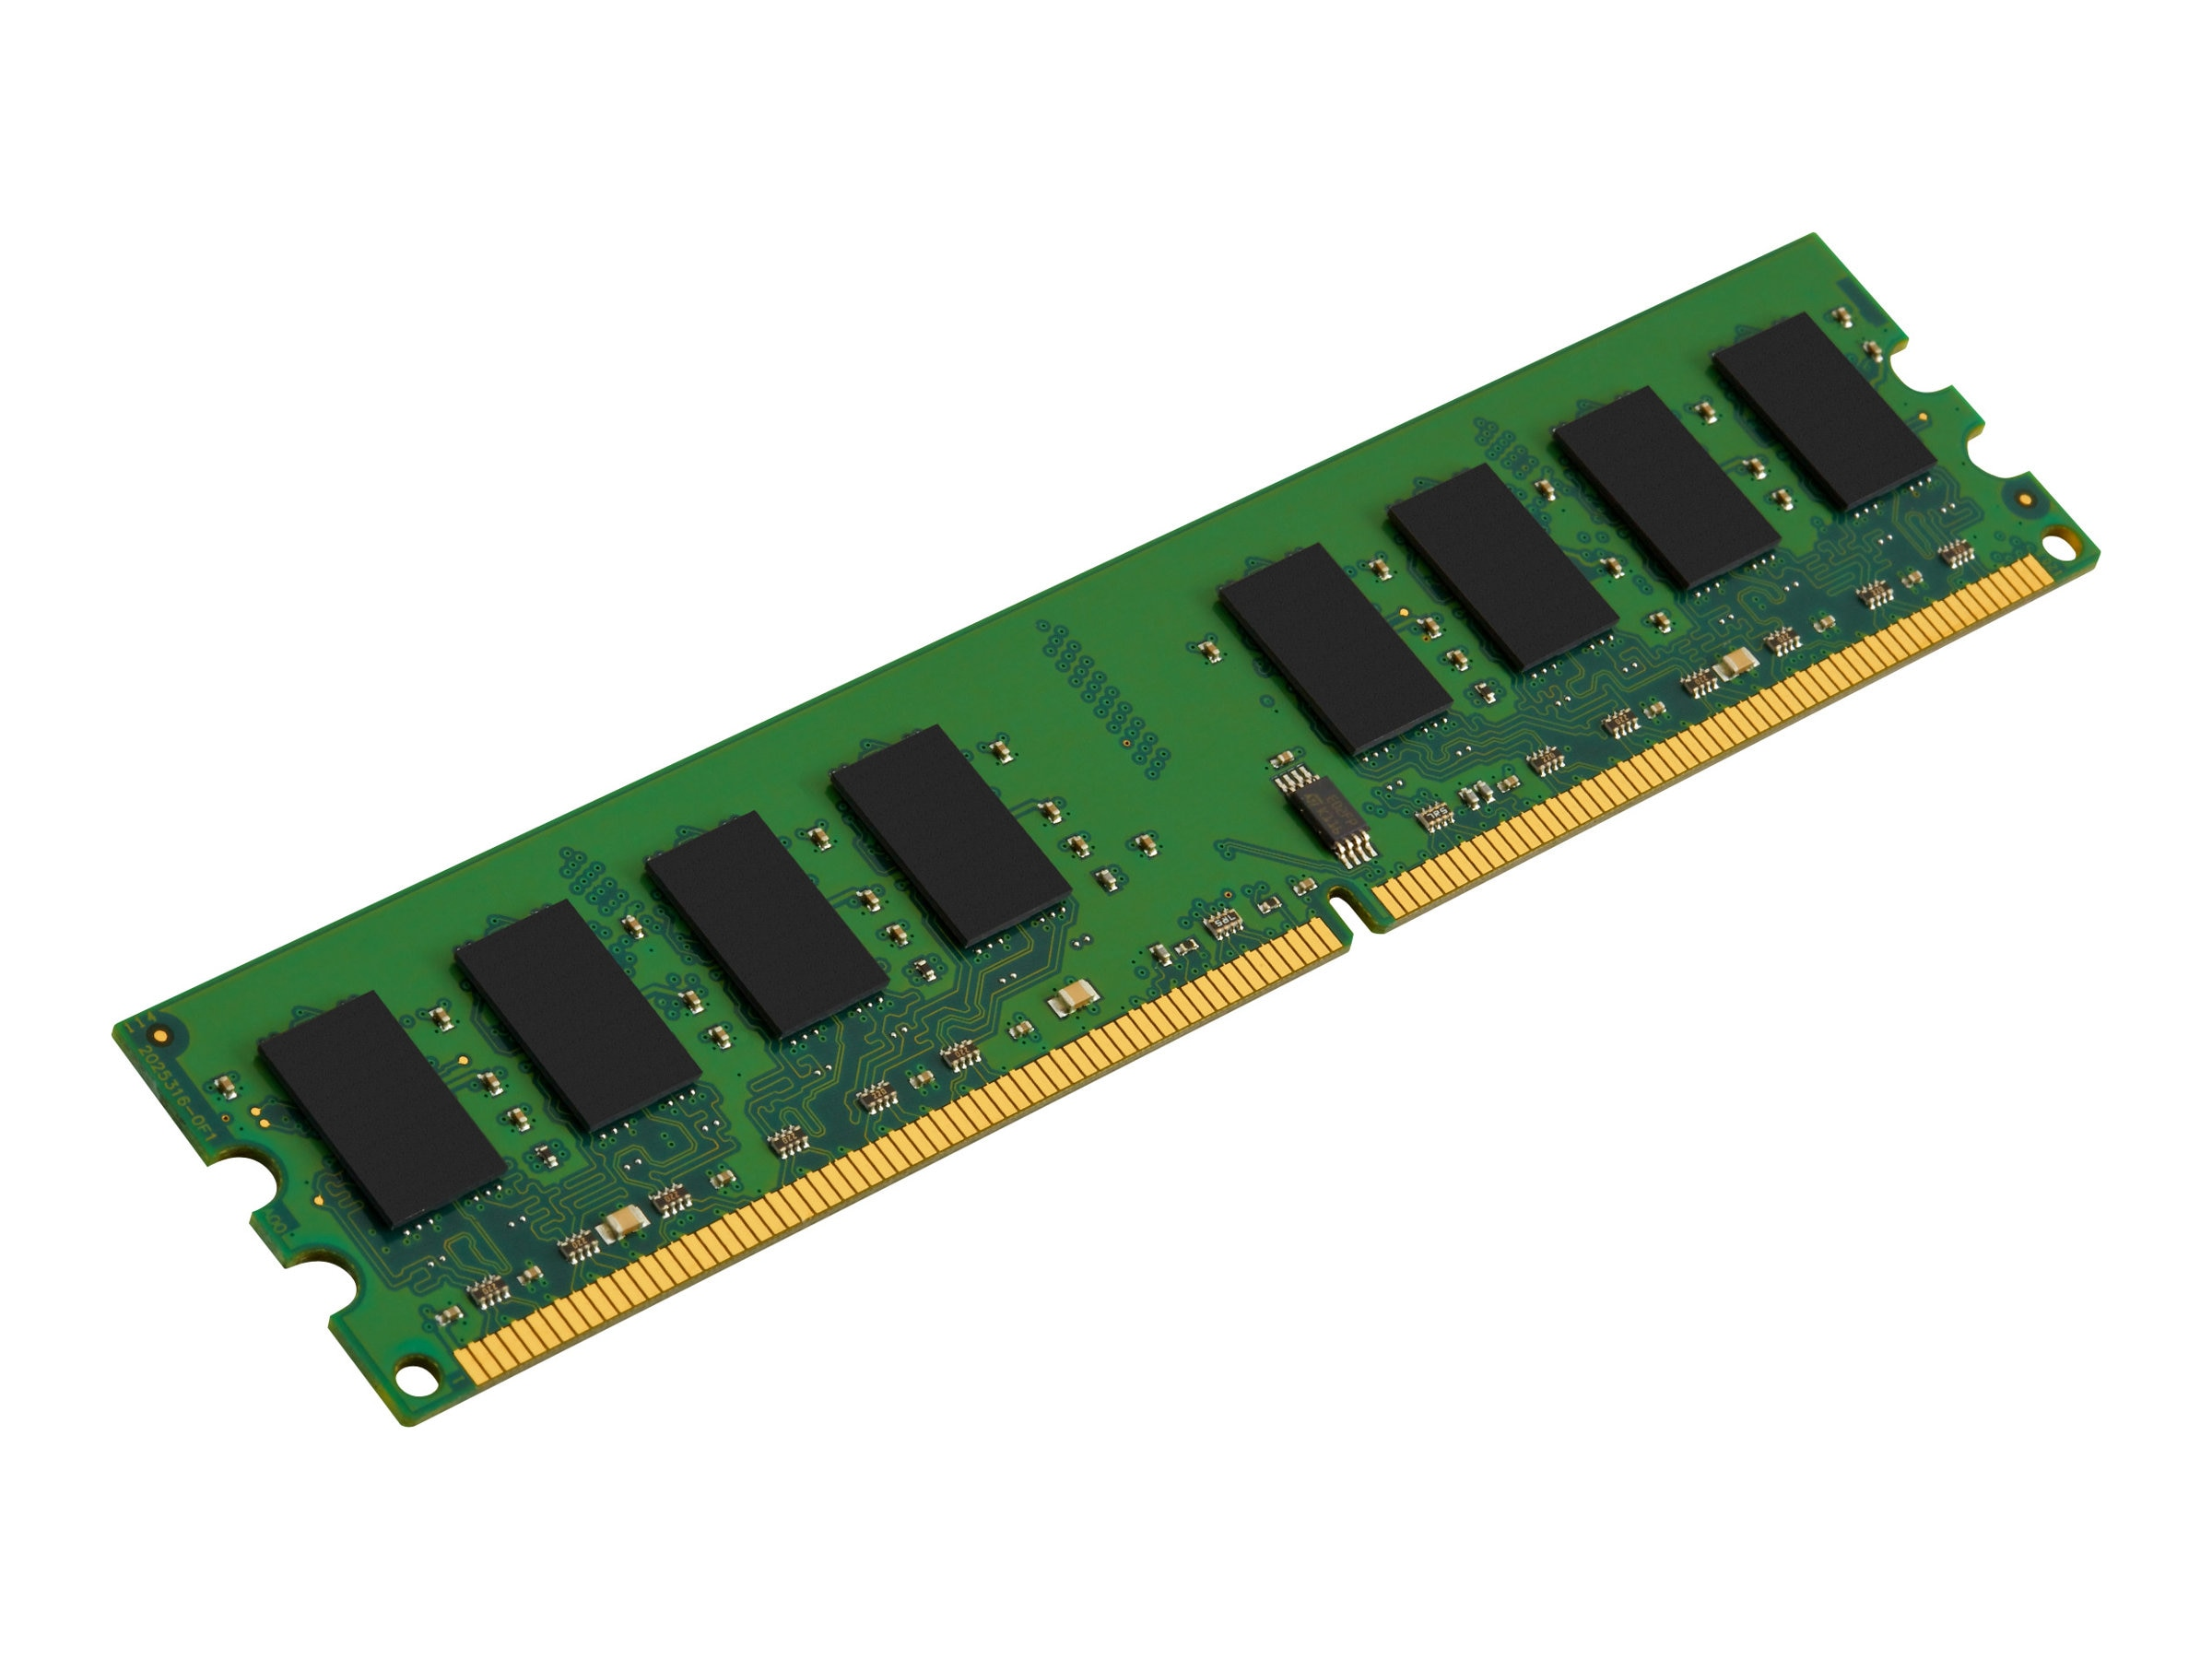 Kingston 2GB PC2-6400 240-pin DDR2 SDRAM UDIMM for Select Models, KTH-XW4400C6/2G, 8391405, Memory